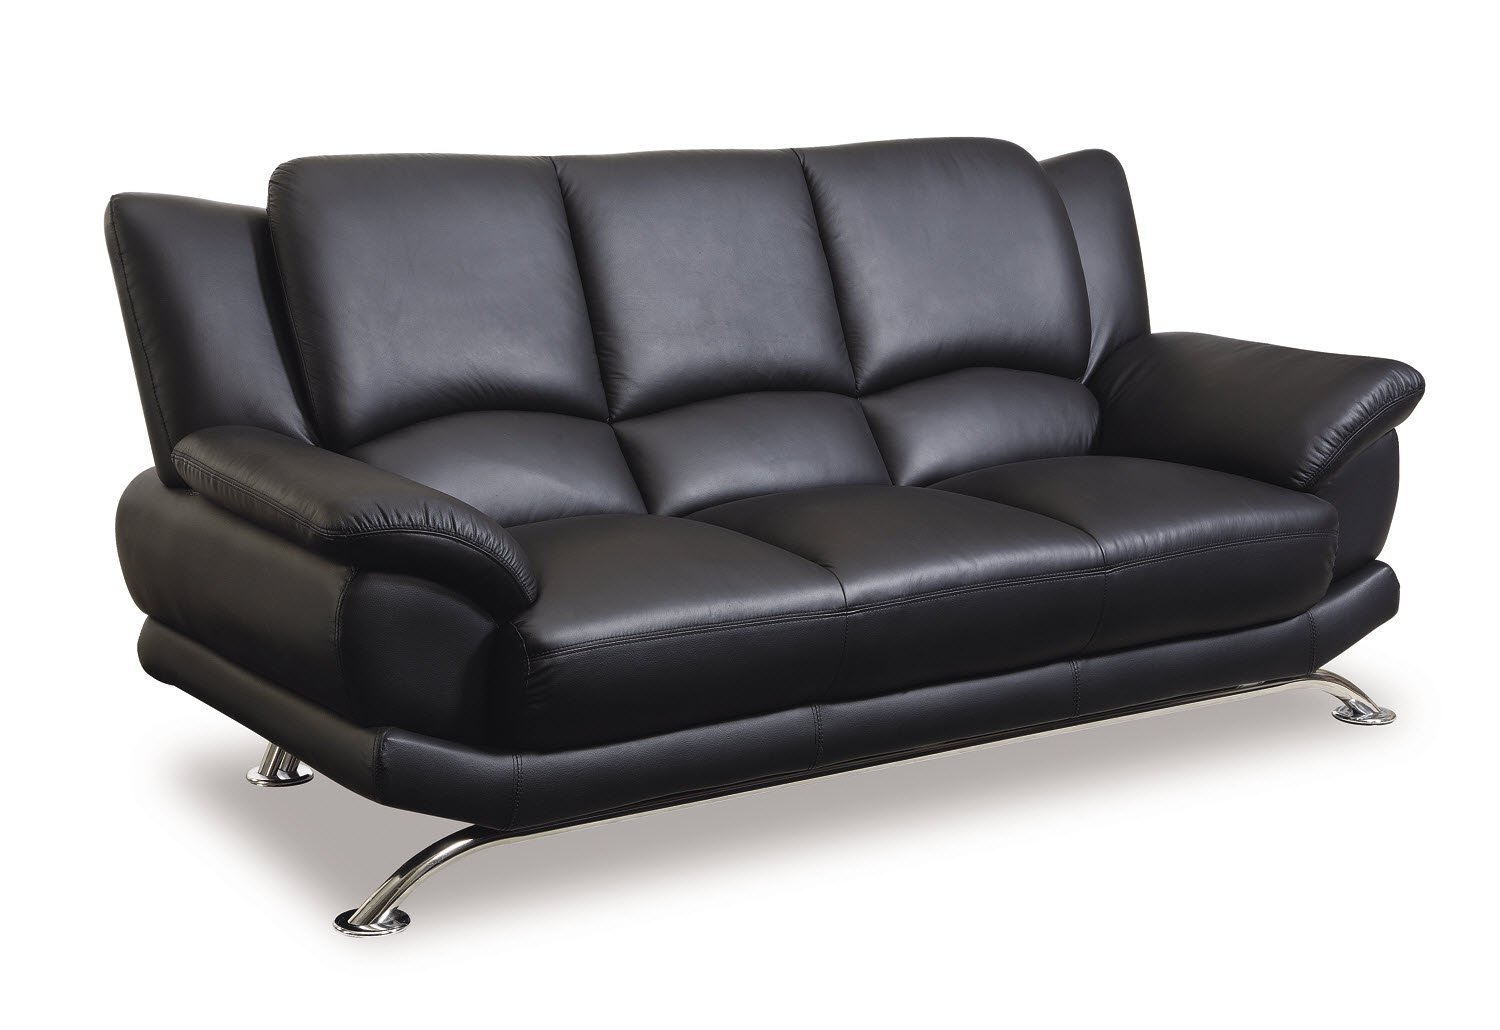 Buy Cmesh Modern Sofa: Small Sectional Sofa